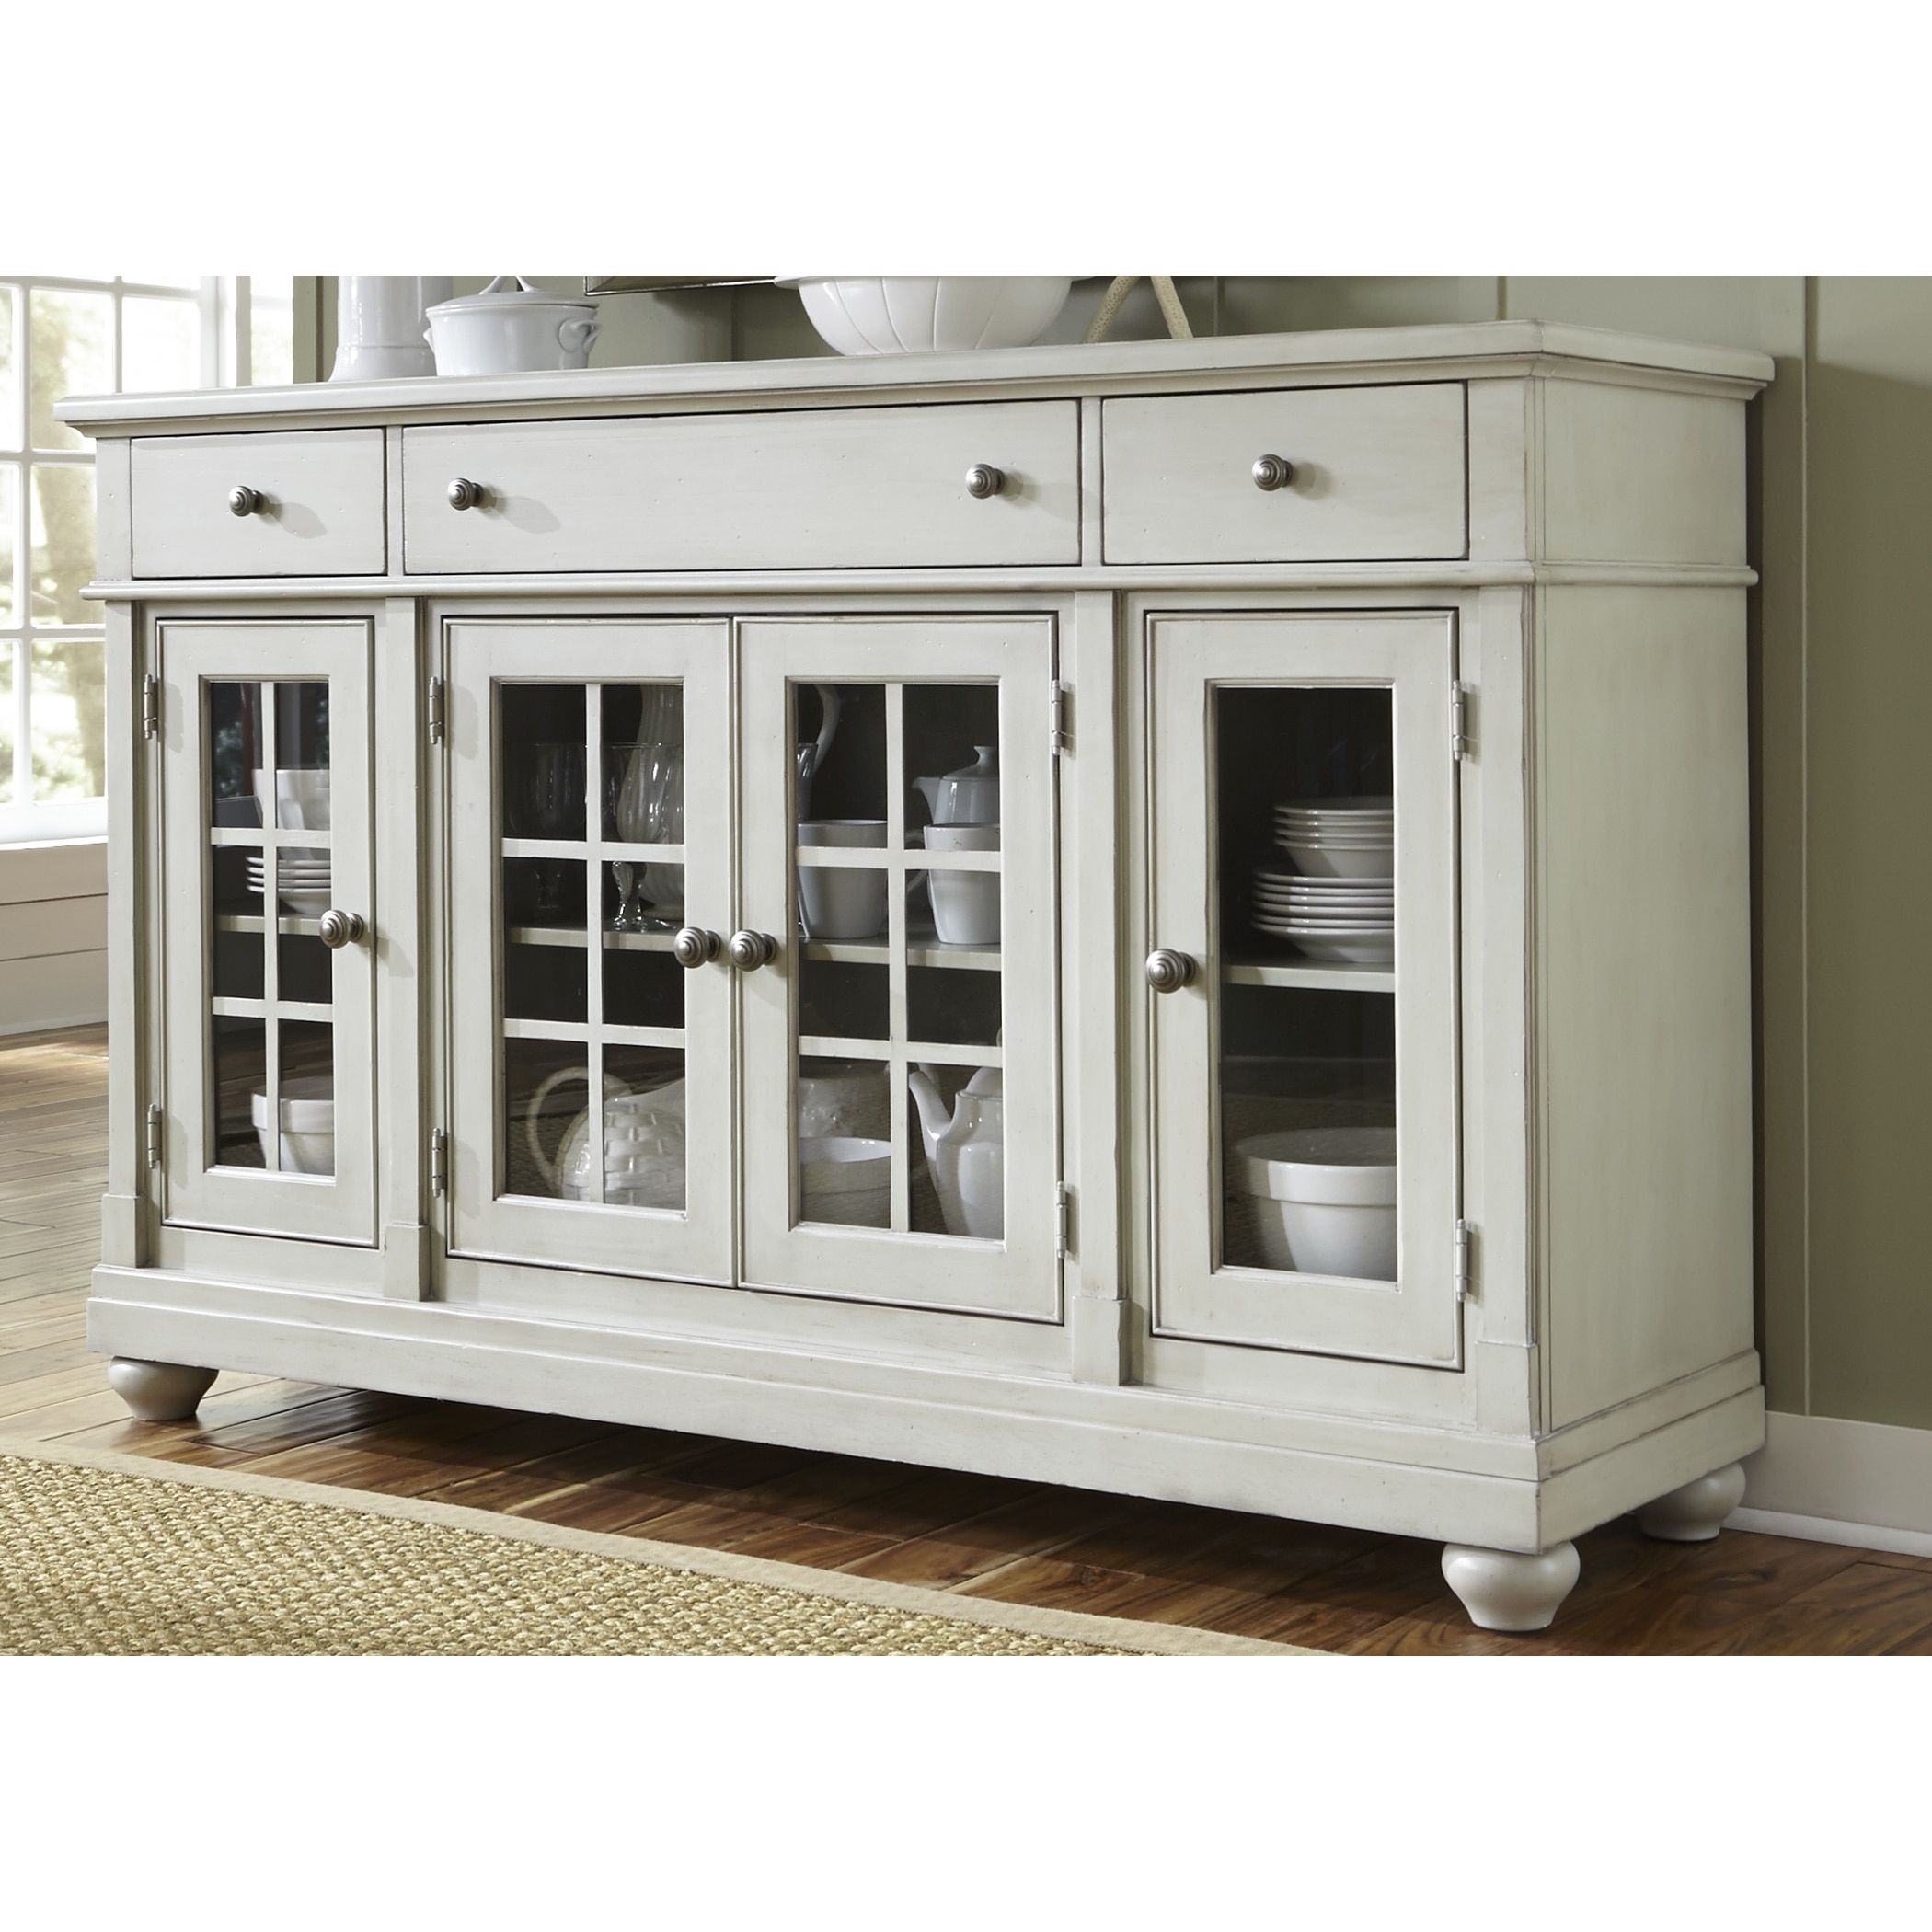 Buffets buffets sideboards and china cabinets are ideal for buffets buffets sideboards and china cabinets are ideal for displaying and storing fine china dzzzfo